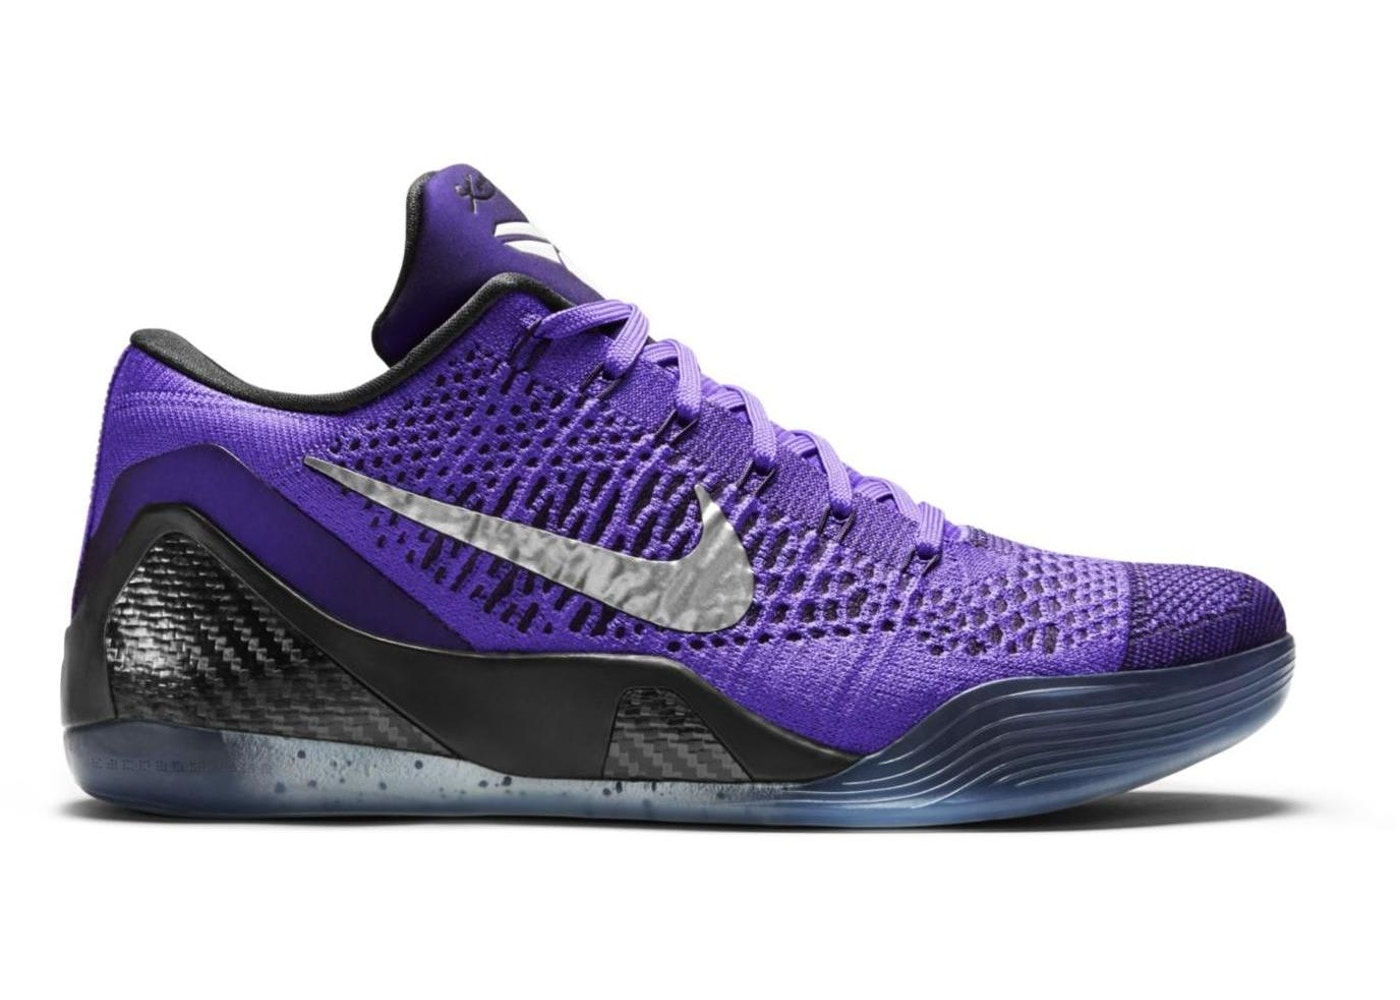 new style 6a06a 9dfa0 Buy Nike Kobe 9 Shoes   Deadstock Sneakers